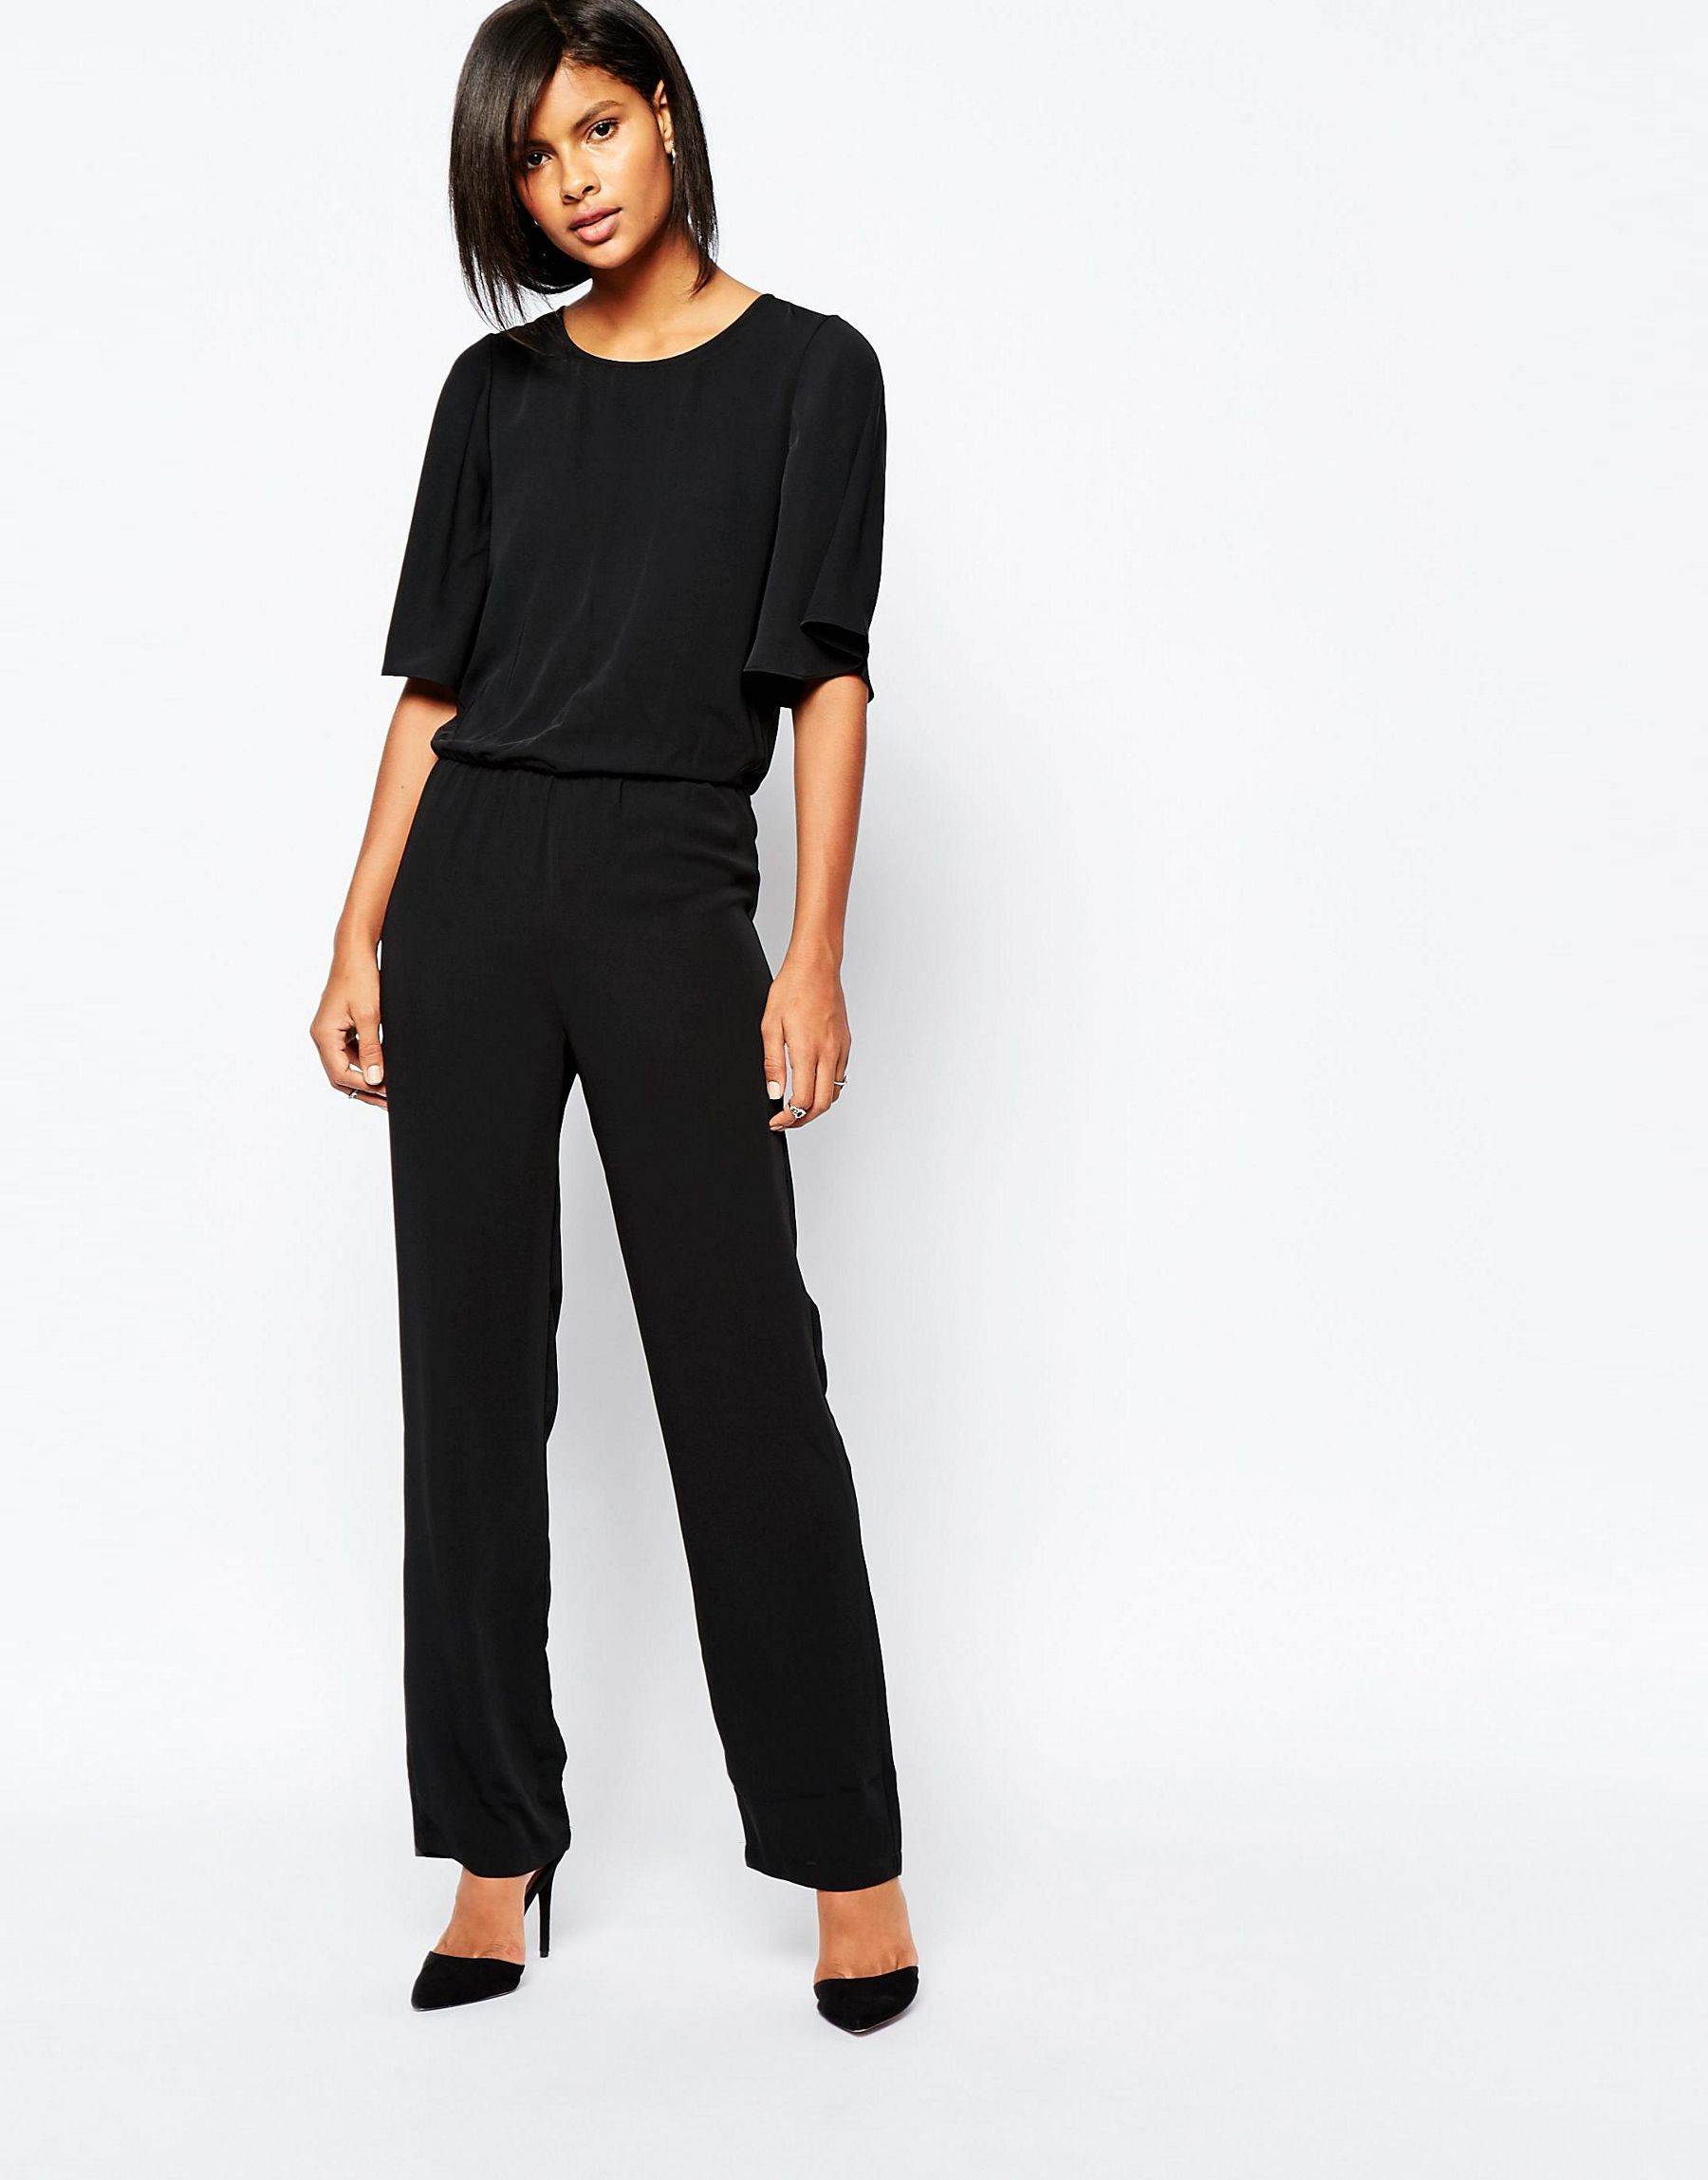 vero moda kimono sleeve jumpsuit in black lyst. Black Bedroom Furniture Sets. Home Design Ideas